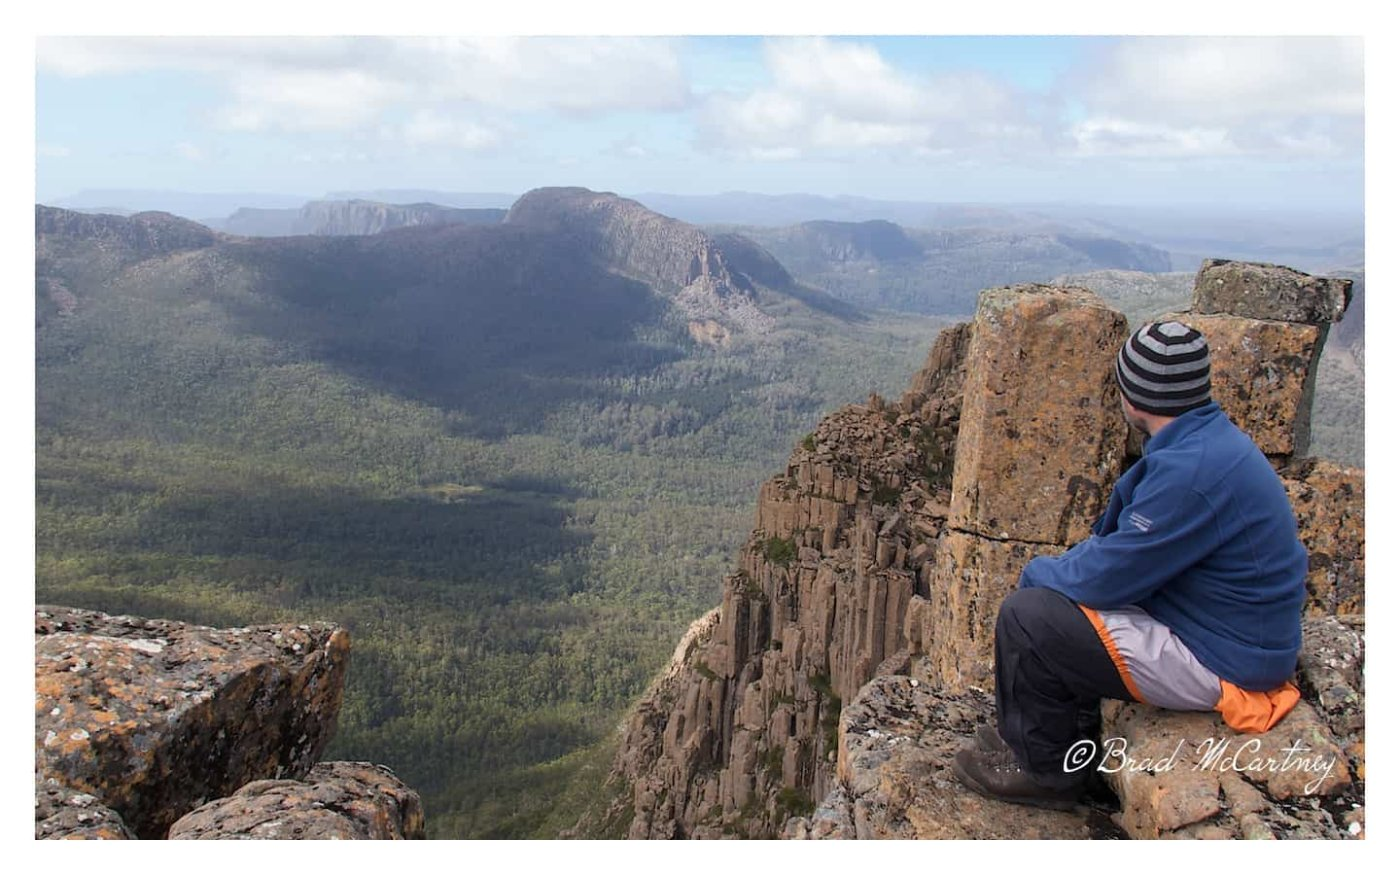 On top of the Acropolis, Overland Track